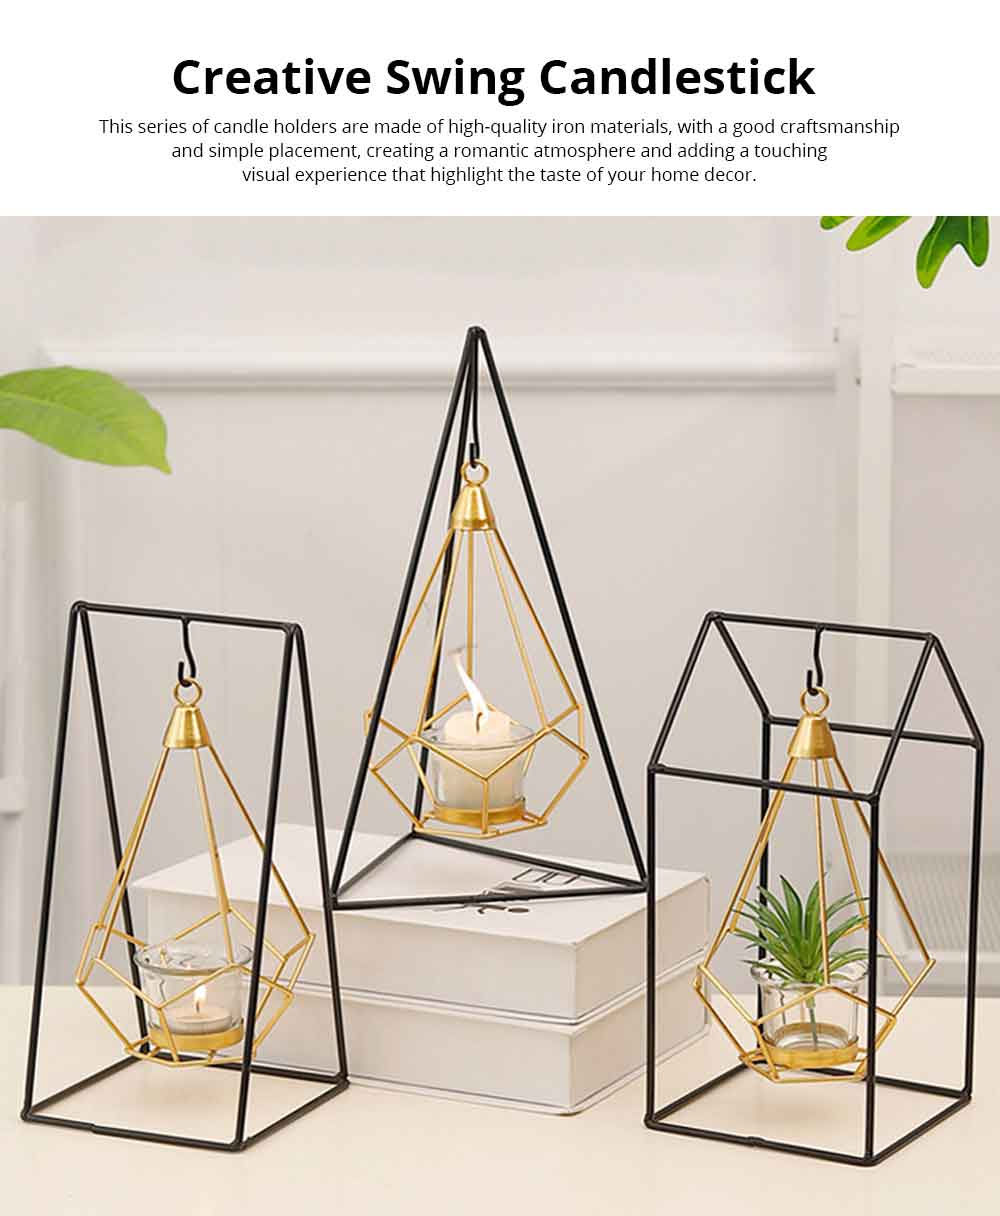 Candlestick Nordic Ins Geometric Wrought Iron Hanging Candle Holder Modern Home Decor Table Candle Decor Shooting Props Gold & Black 0